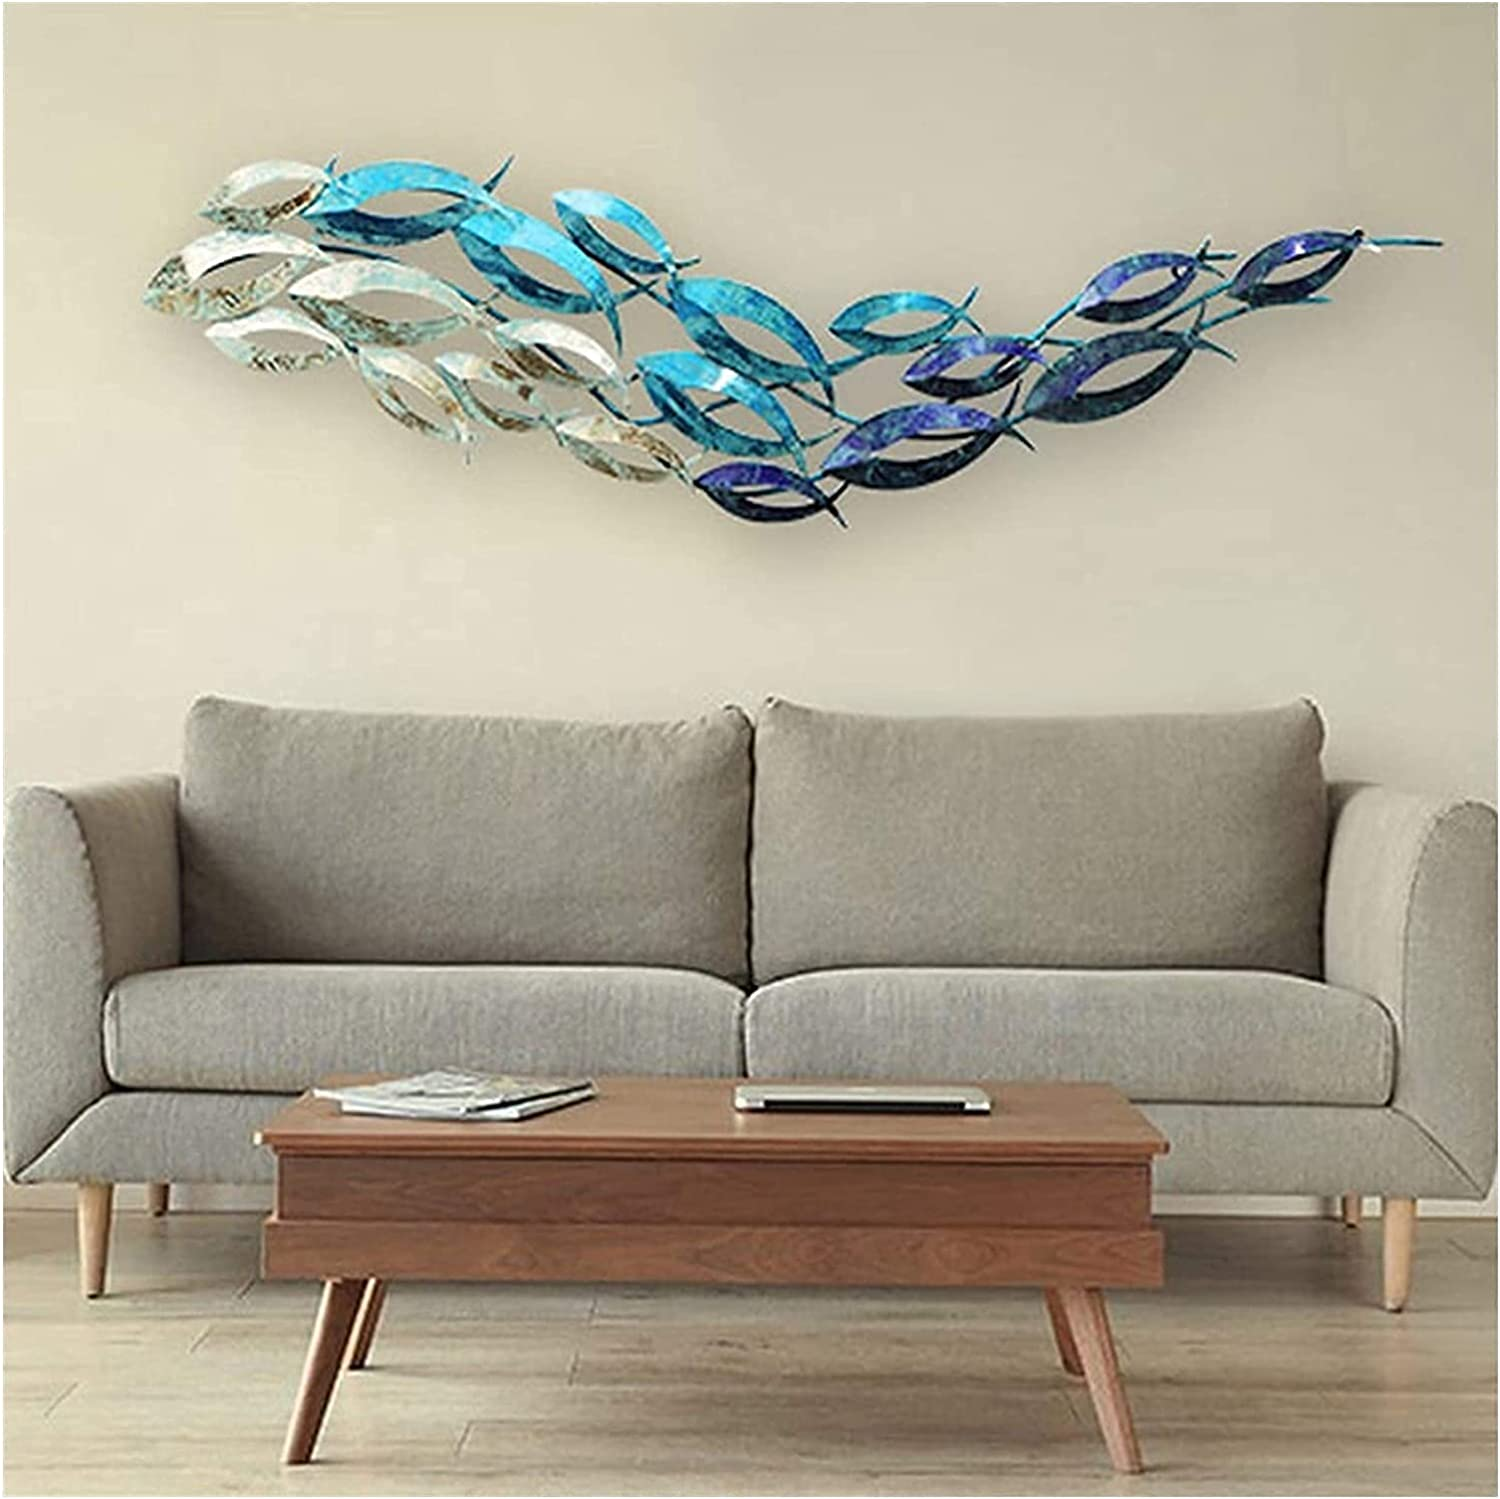 Ranking TOP17 Wall Decorations 3D Metal Hanging Home Decor W Fishes Ocean Bombing free shipping